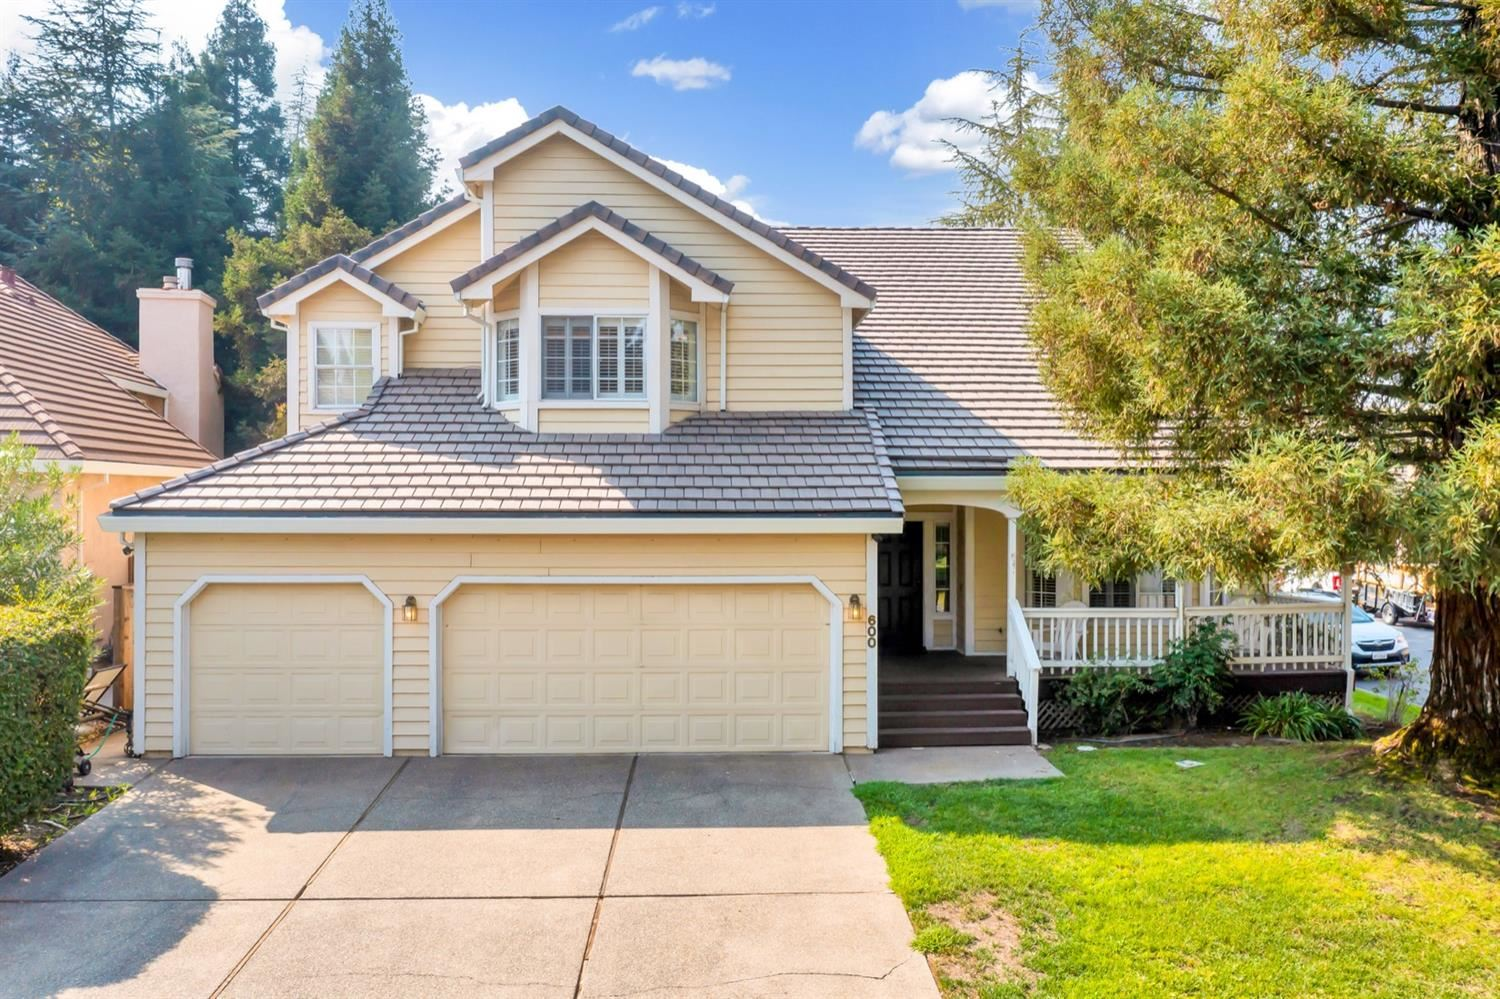 600 Picardy Court, Roseville, CA 95661 - #: 221118216